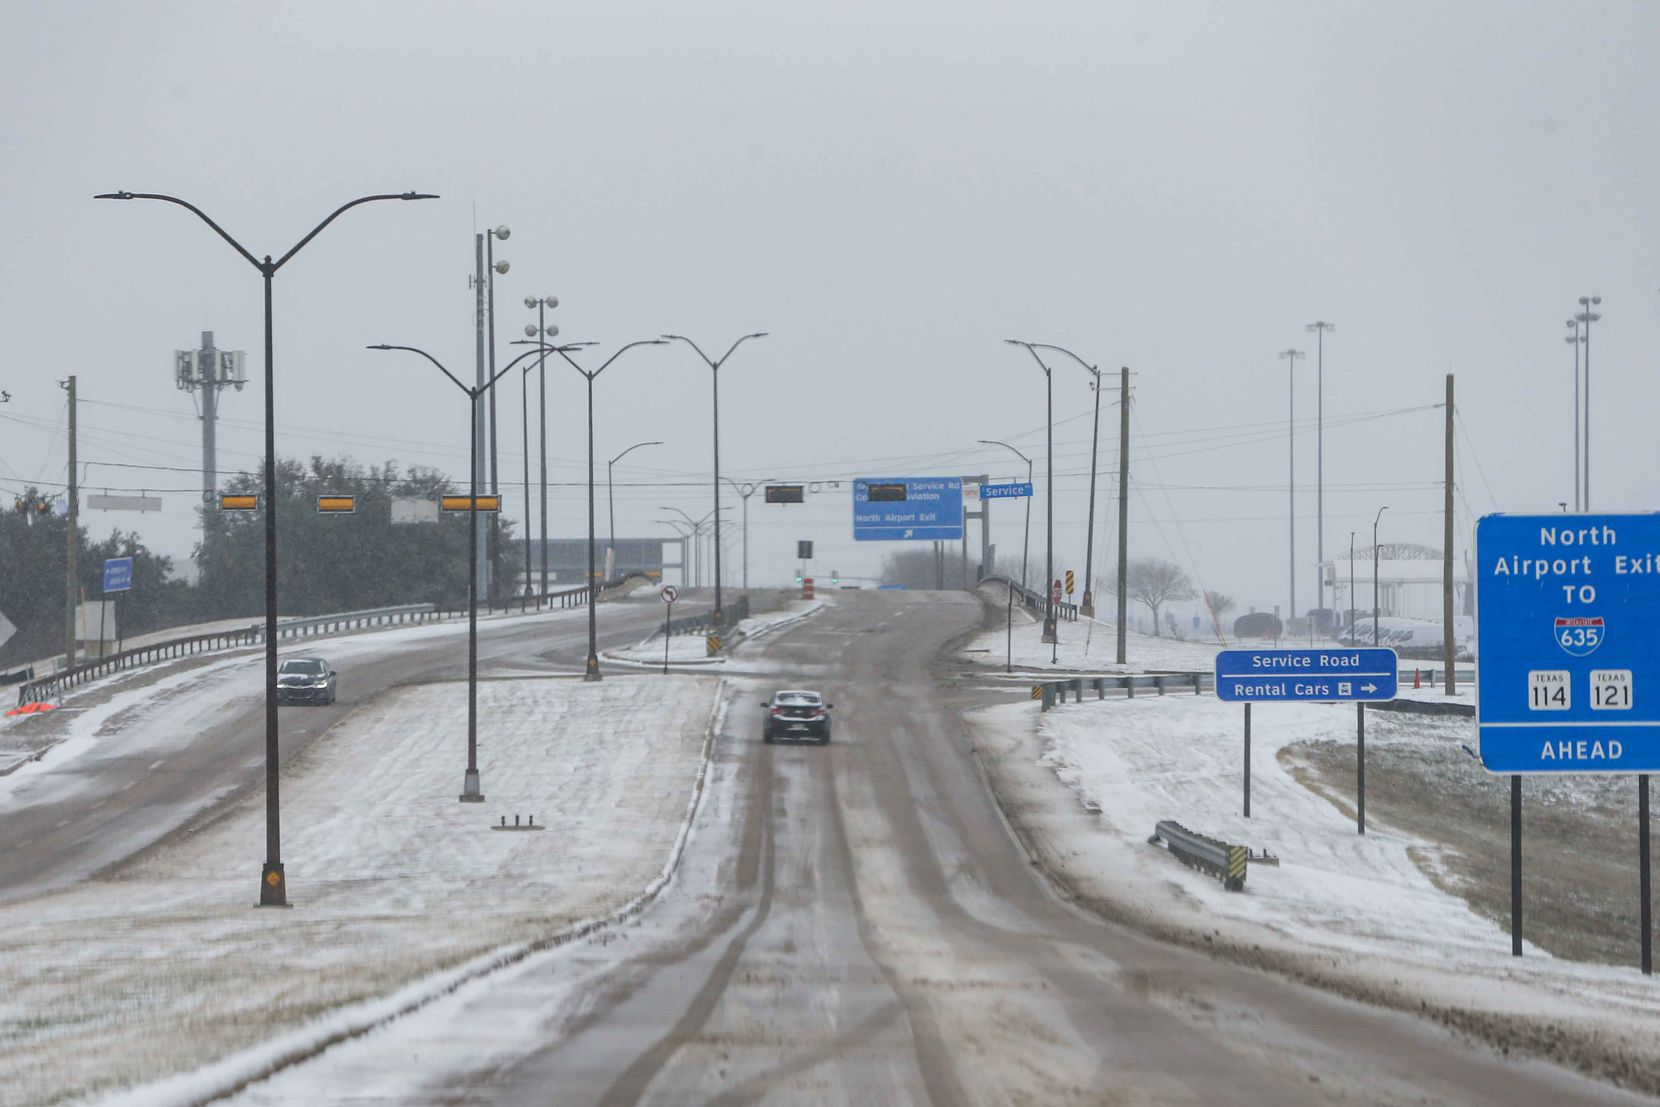 Snow and ice descend over DFW International Airport as American cancel hundreds of flights in Irving on Sunday, February 14, 2021.